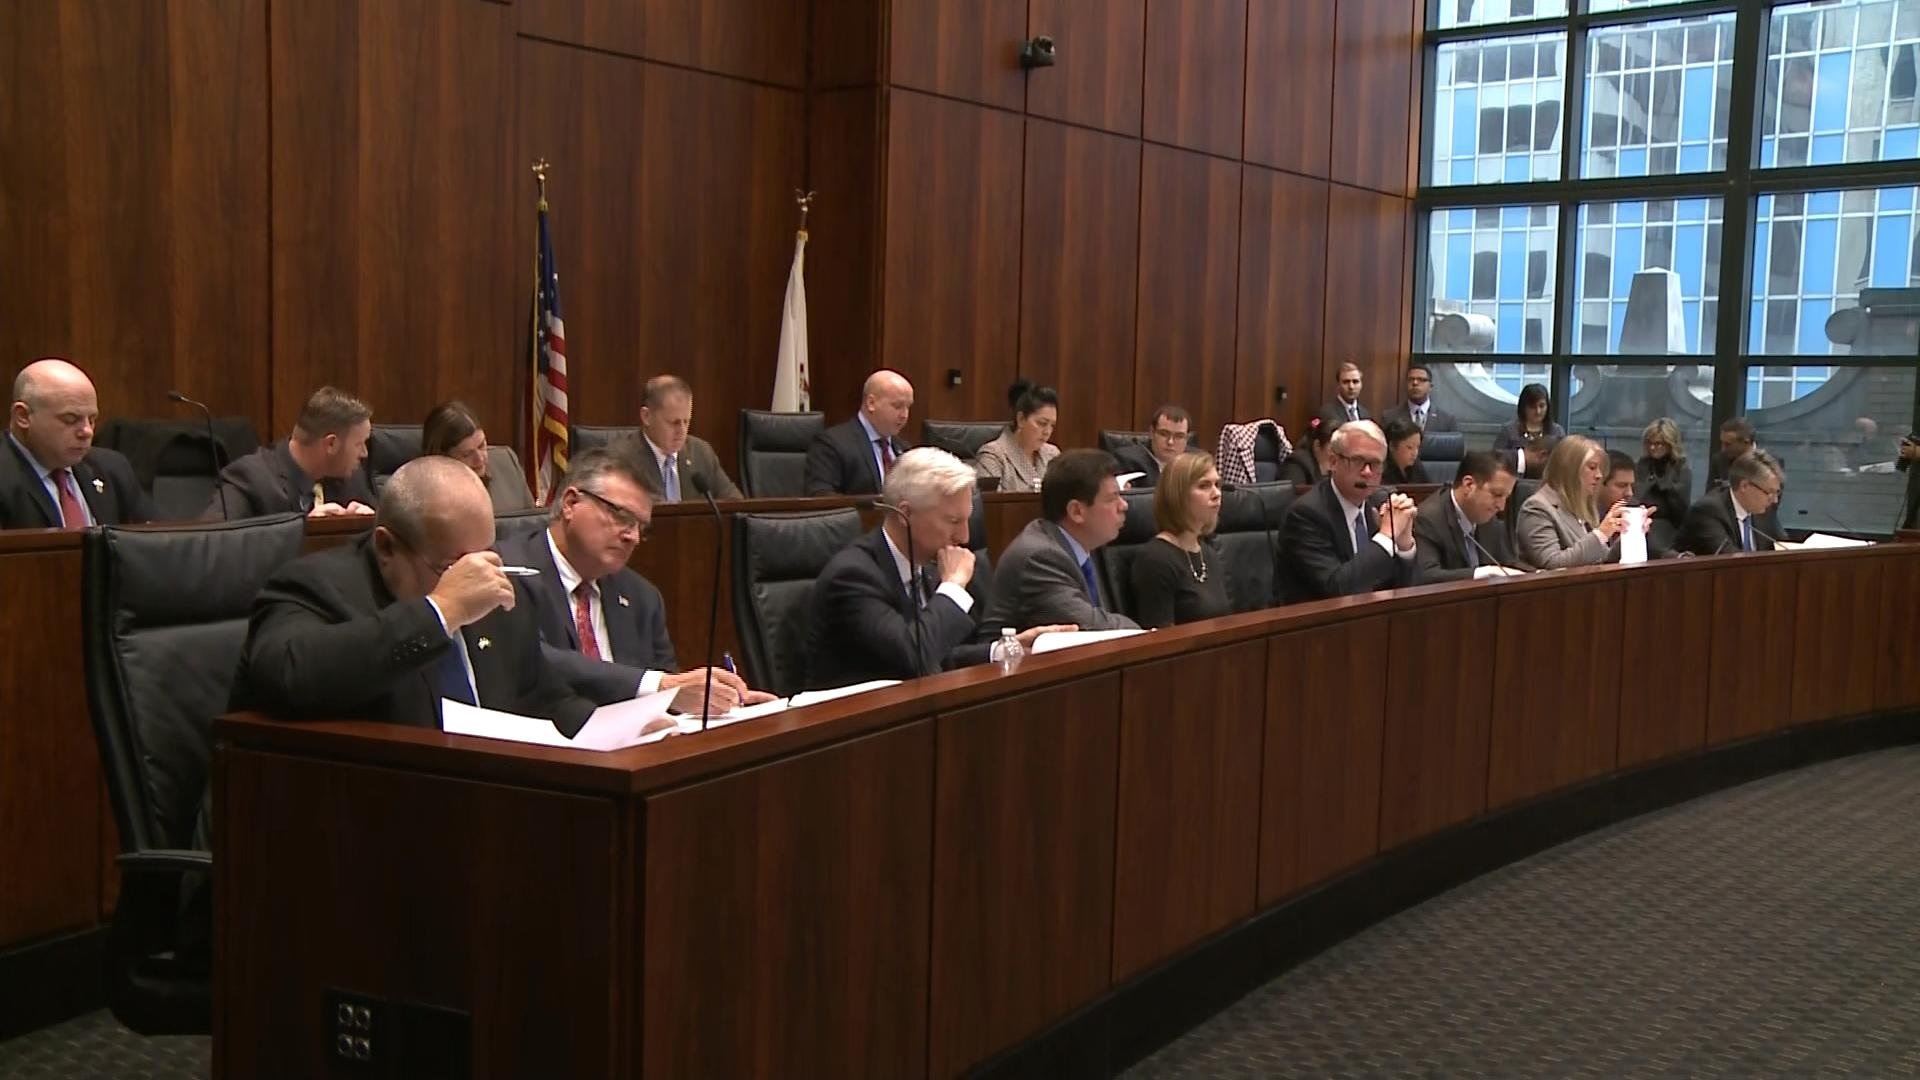 Illinois lawmakers were part of a panel Tuesday in Chicago, questioning legionella concerns at the Illinois Veterans' Home in Quincy.